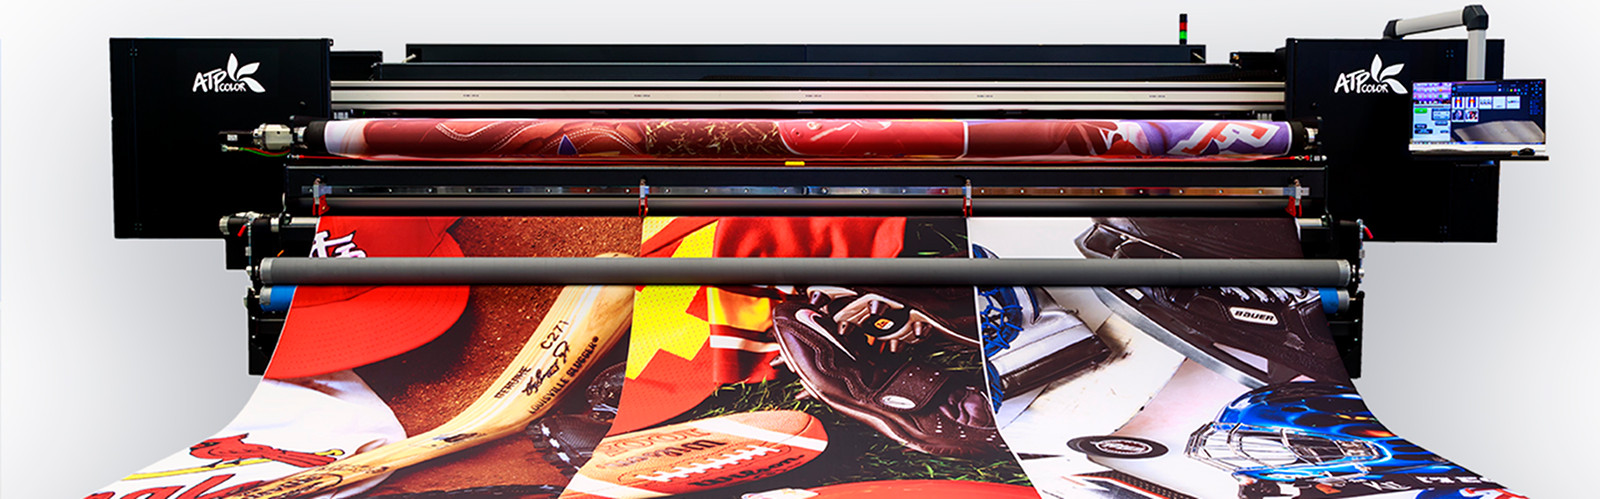 Direct to fabric textile printer 5 m wide